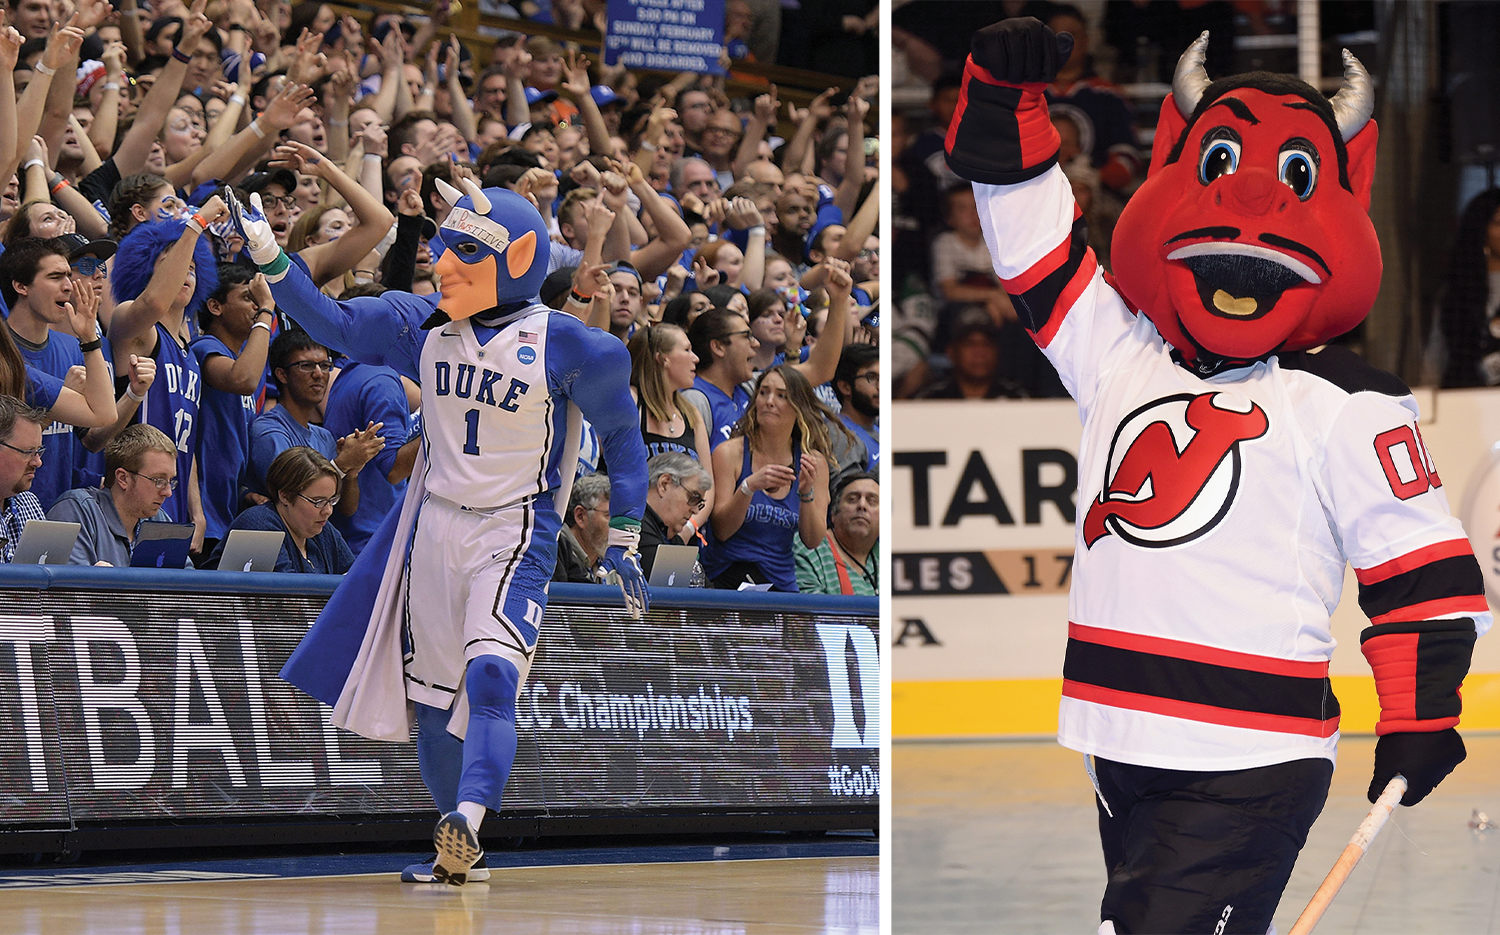 Mascots for the Duke Blue Devils and the New Jersey Devils.